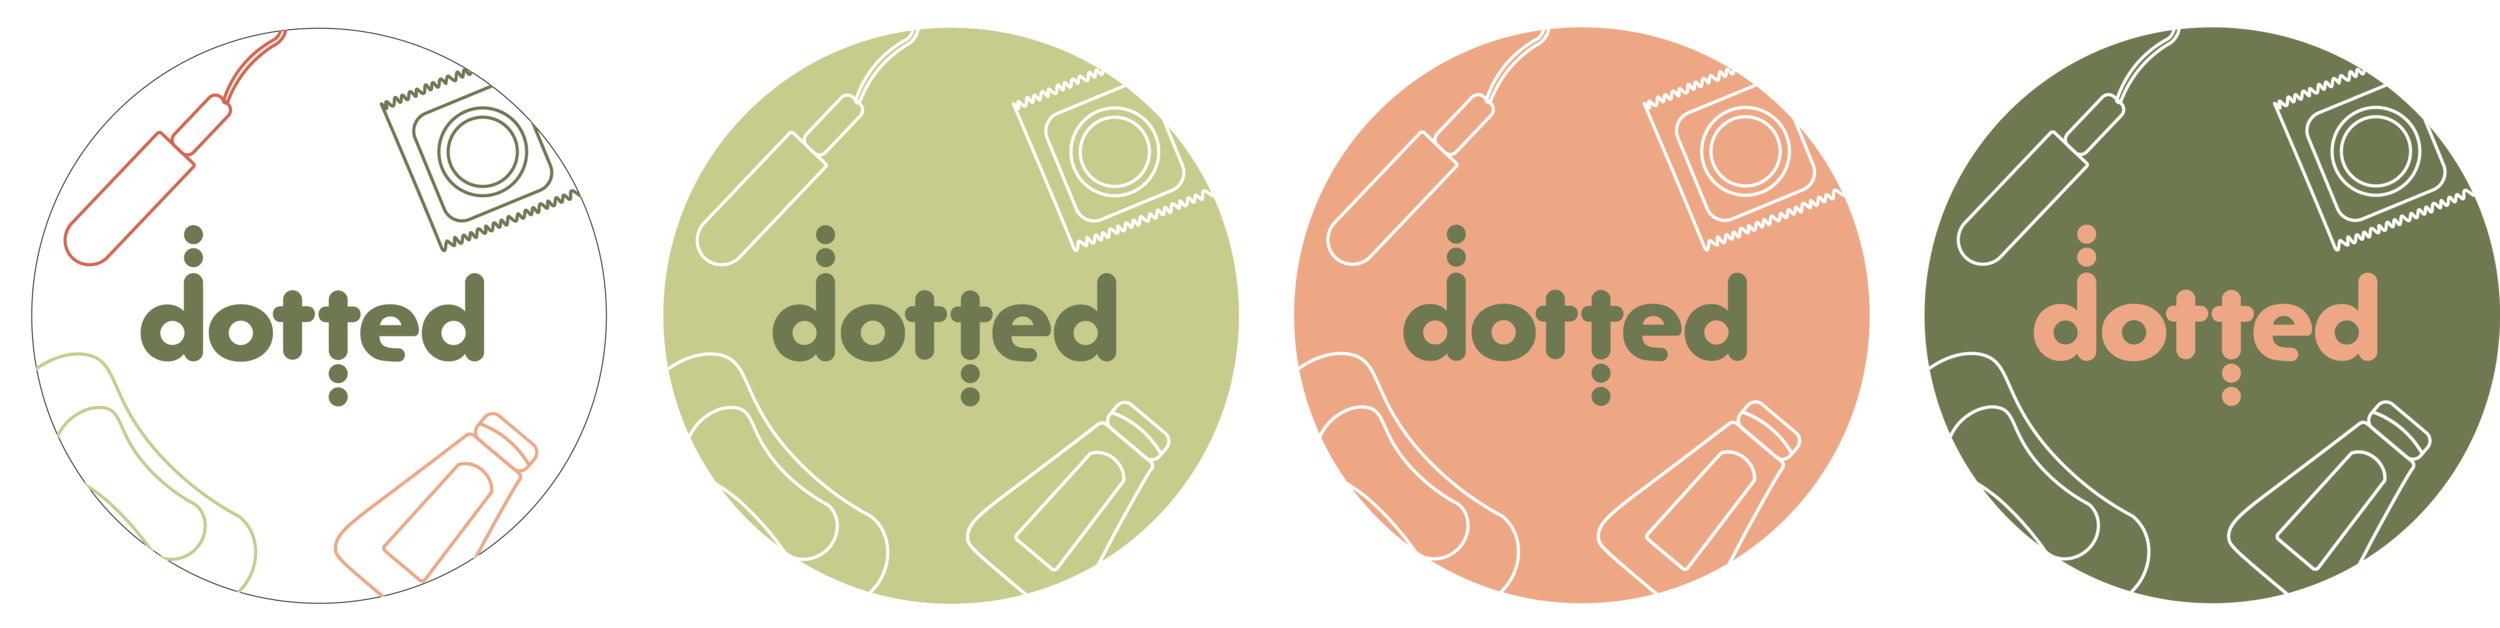 Dotted_Sticker_Designs .png